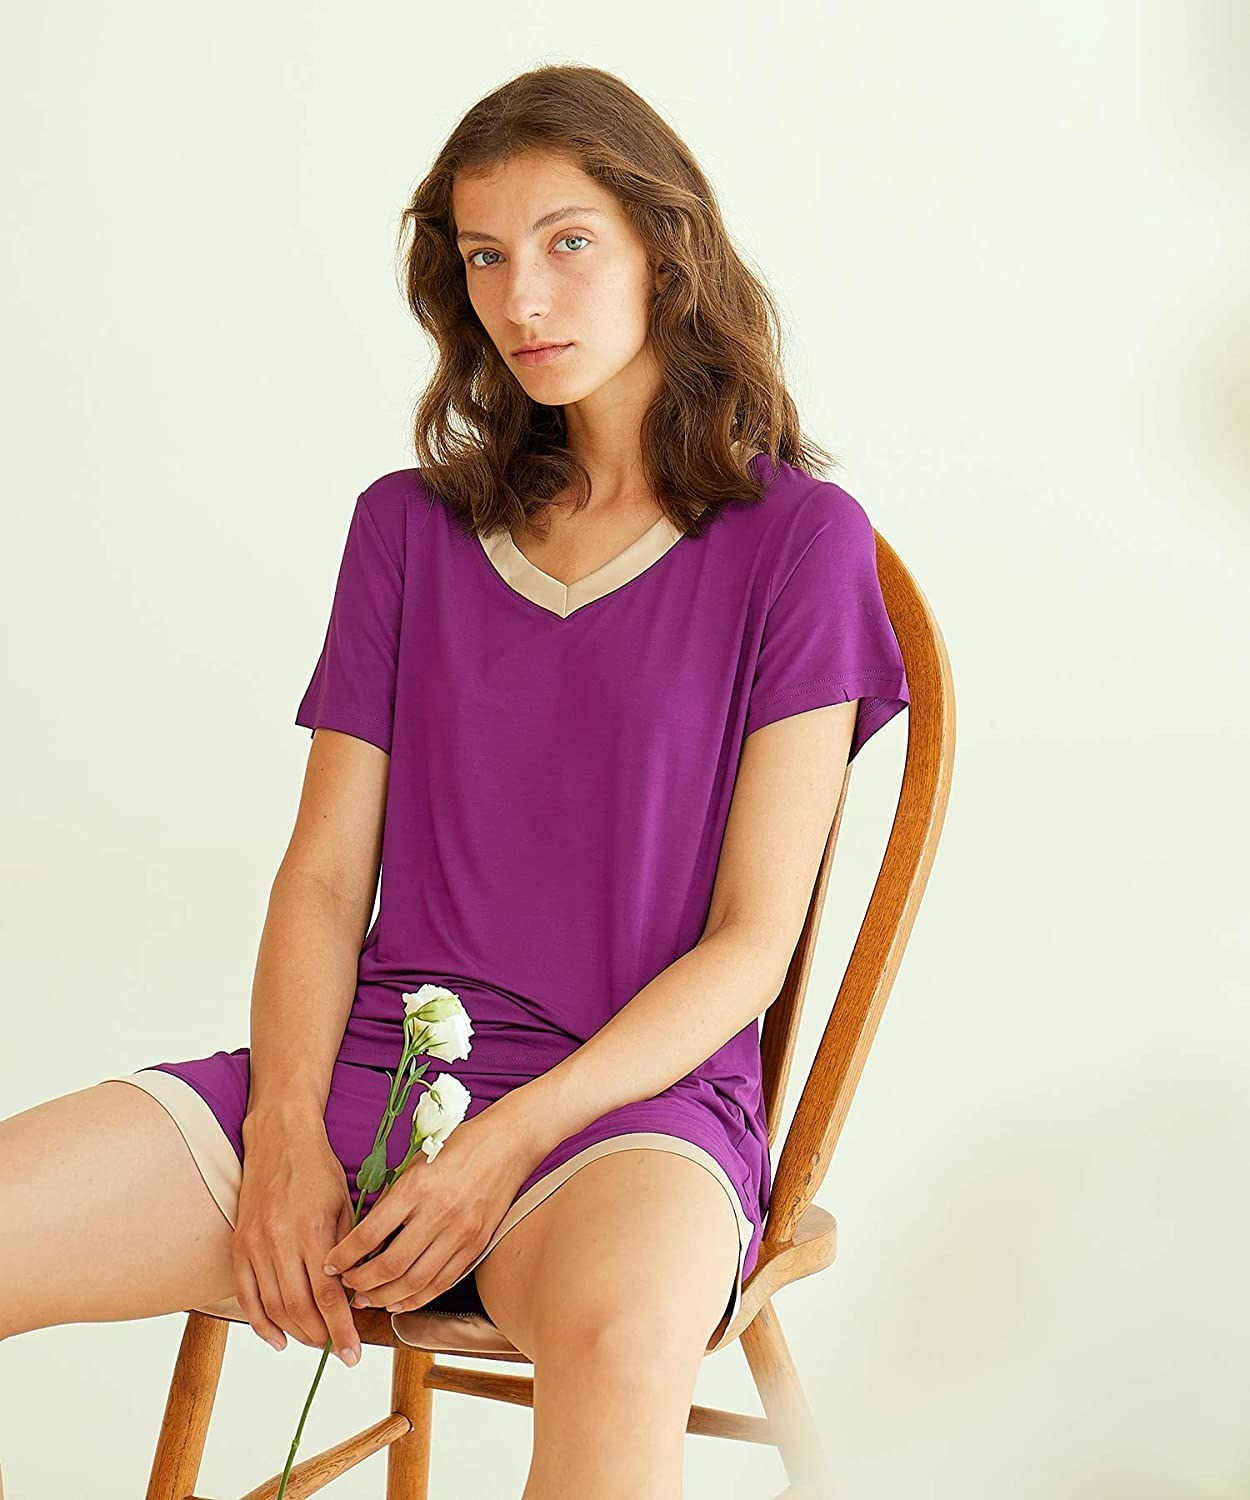 model wearing the purple pajama set